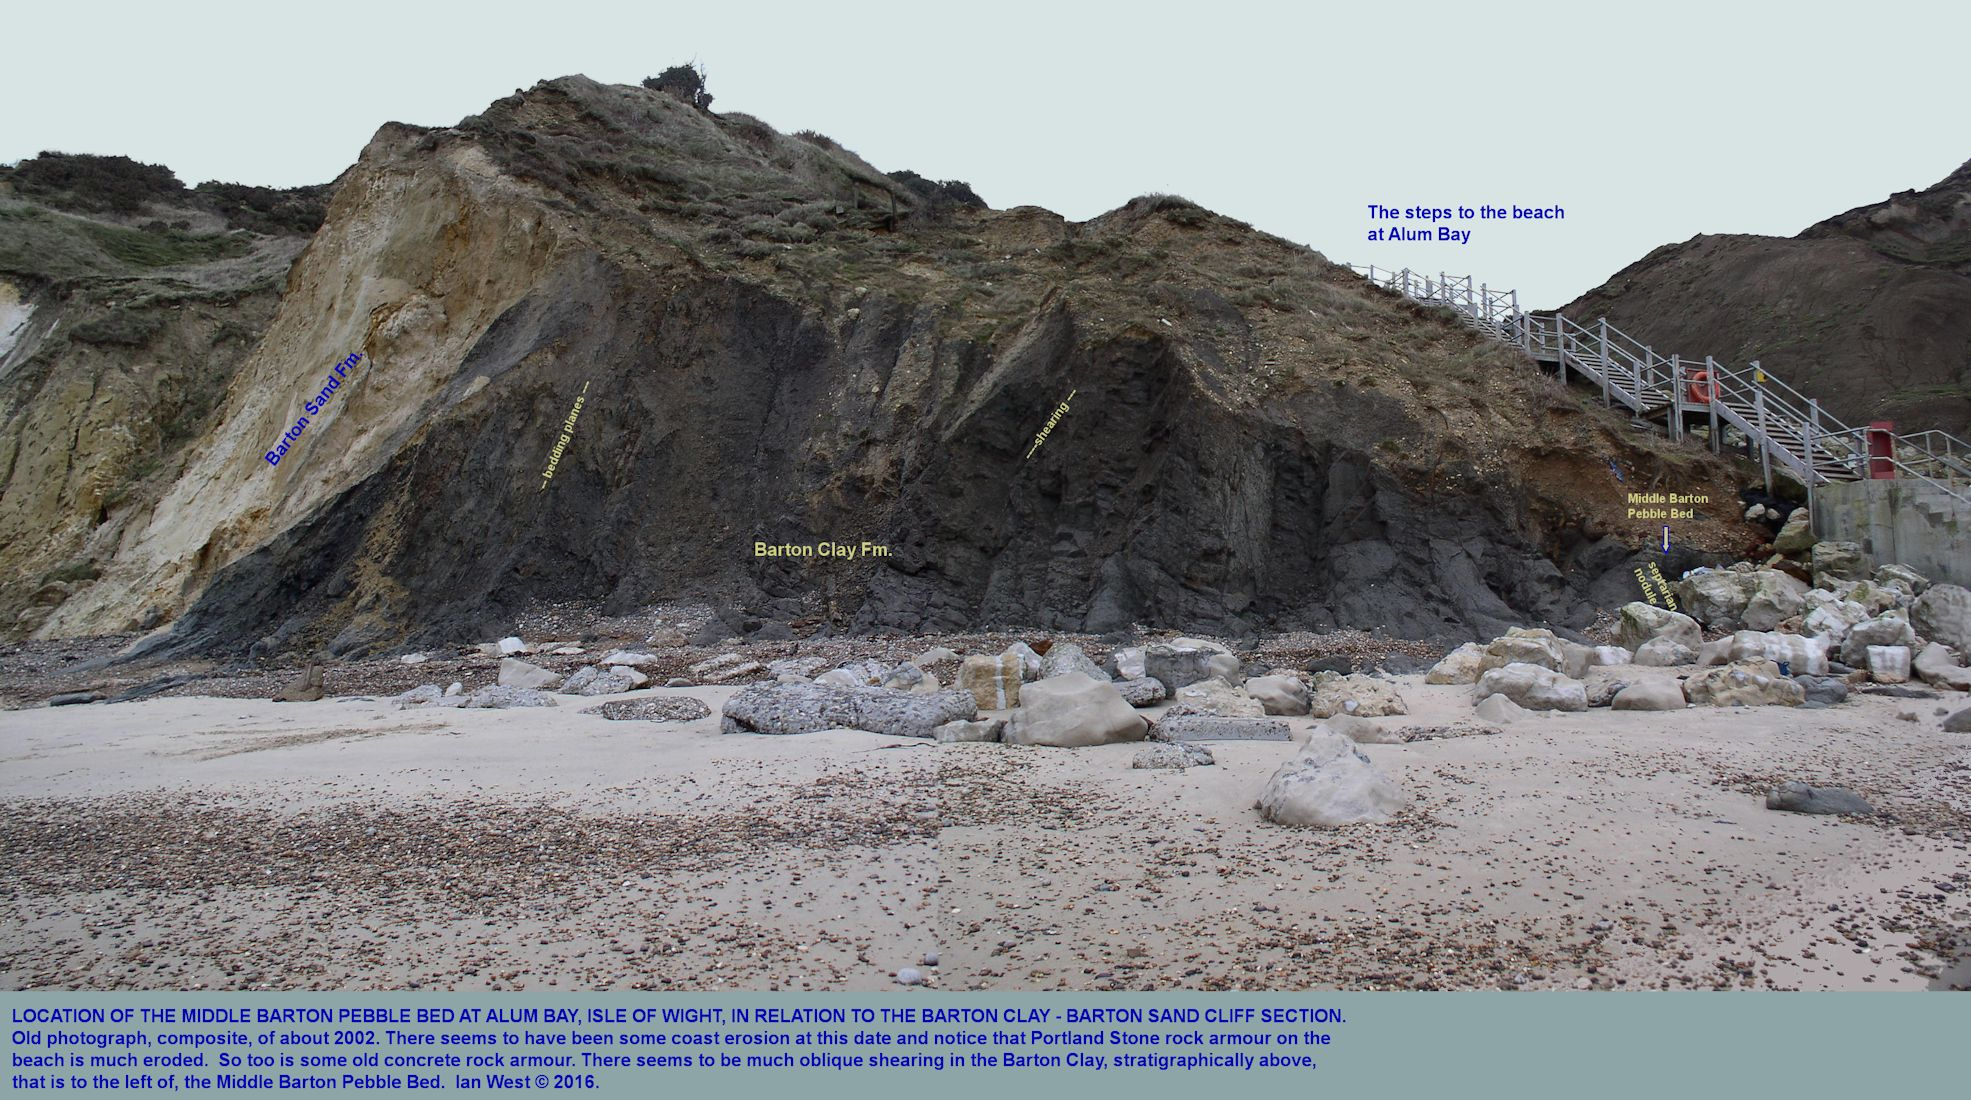 A  broad view of the vertical, Barton Clay Formation from the Steps at Alum Bay, Isle of Wight, northward and stratigraphically upward to the Barton Sand Formation, and showing the relative location of the Mid-Barton Clay Pebble Bed, photo 2002